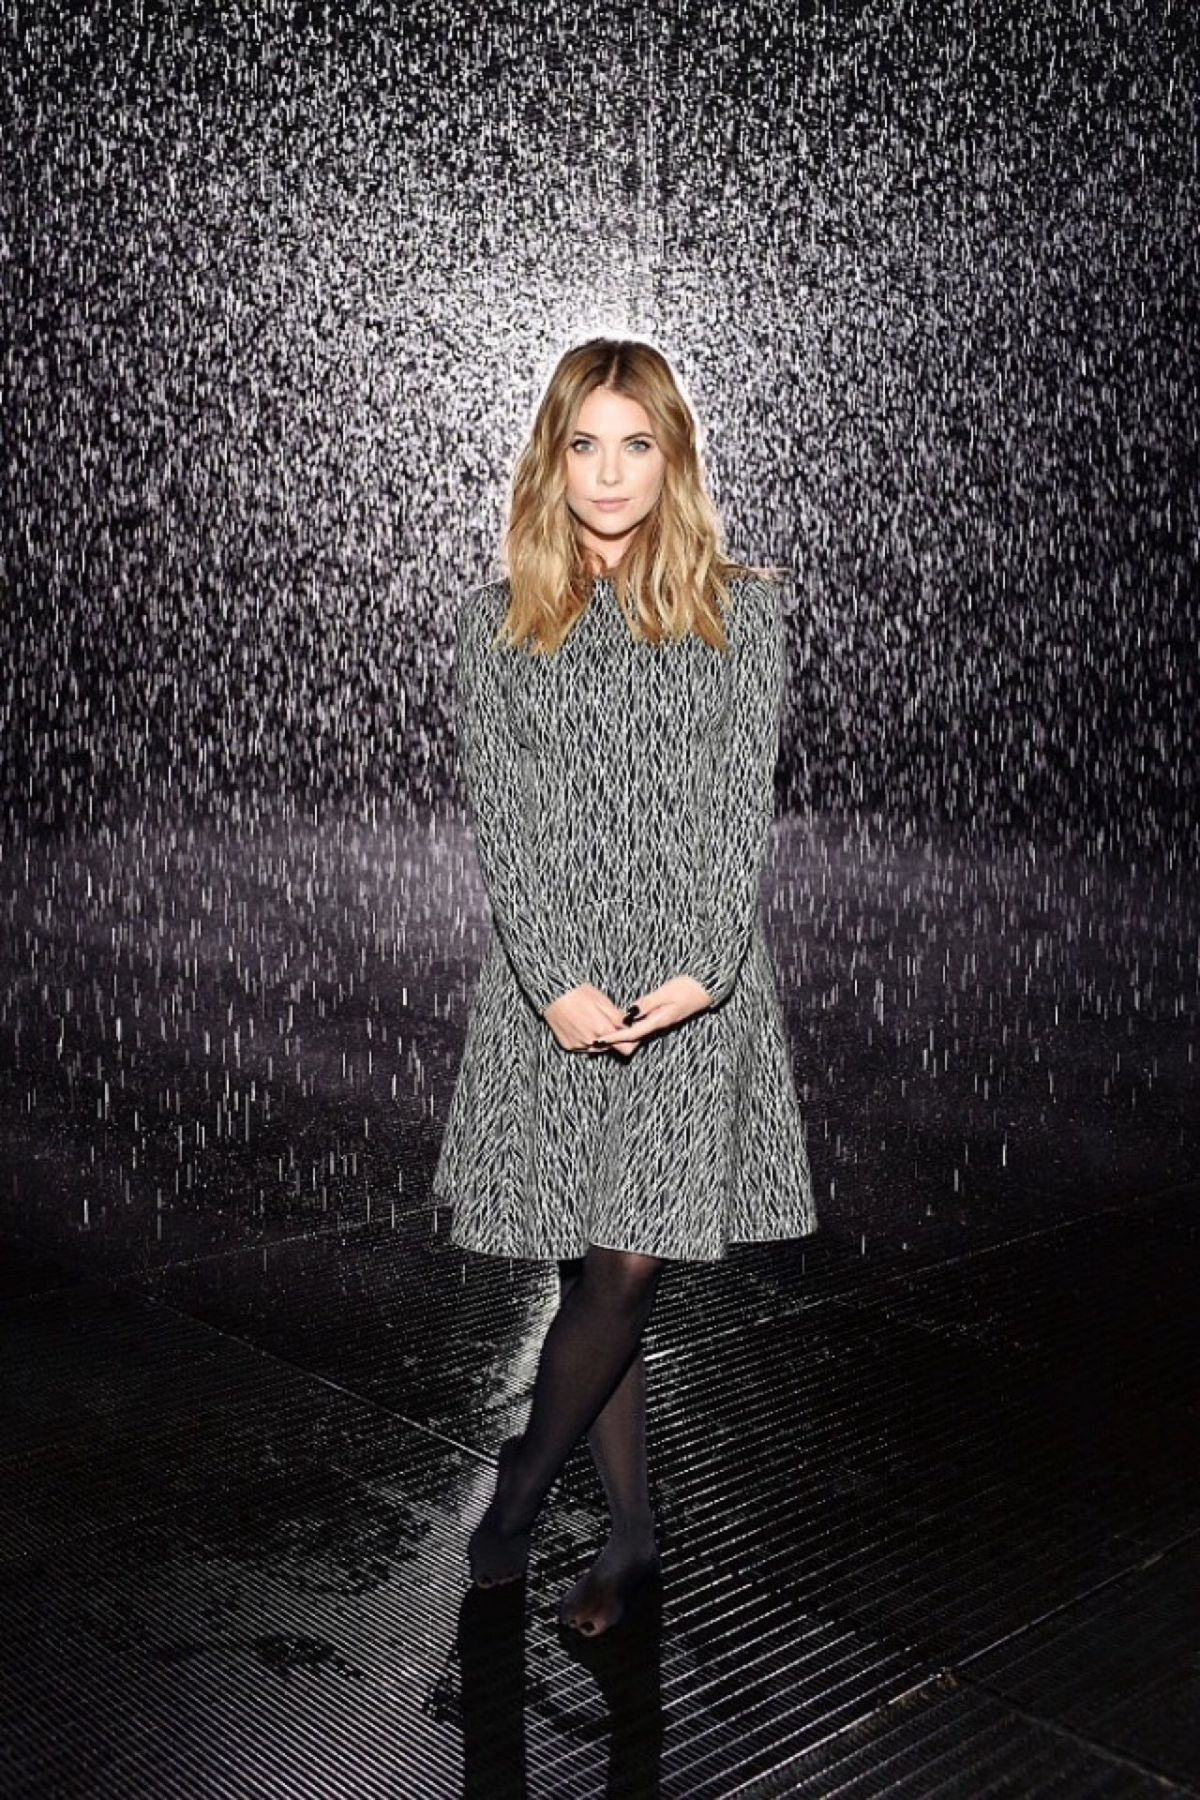 ASHLEY BENSON at West Coast Debut of Rain Room in Los Angeles 10/28/2015